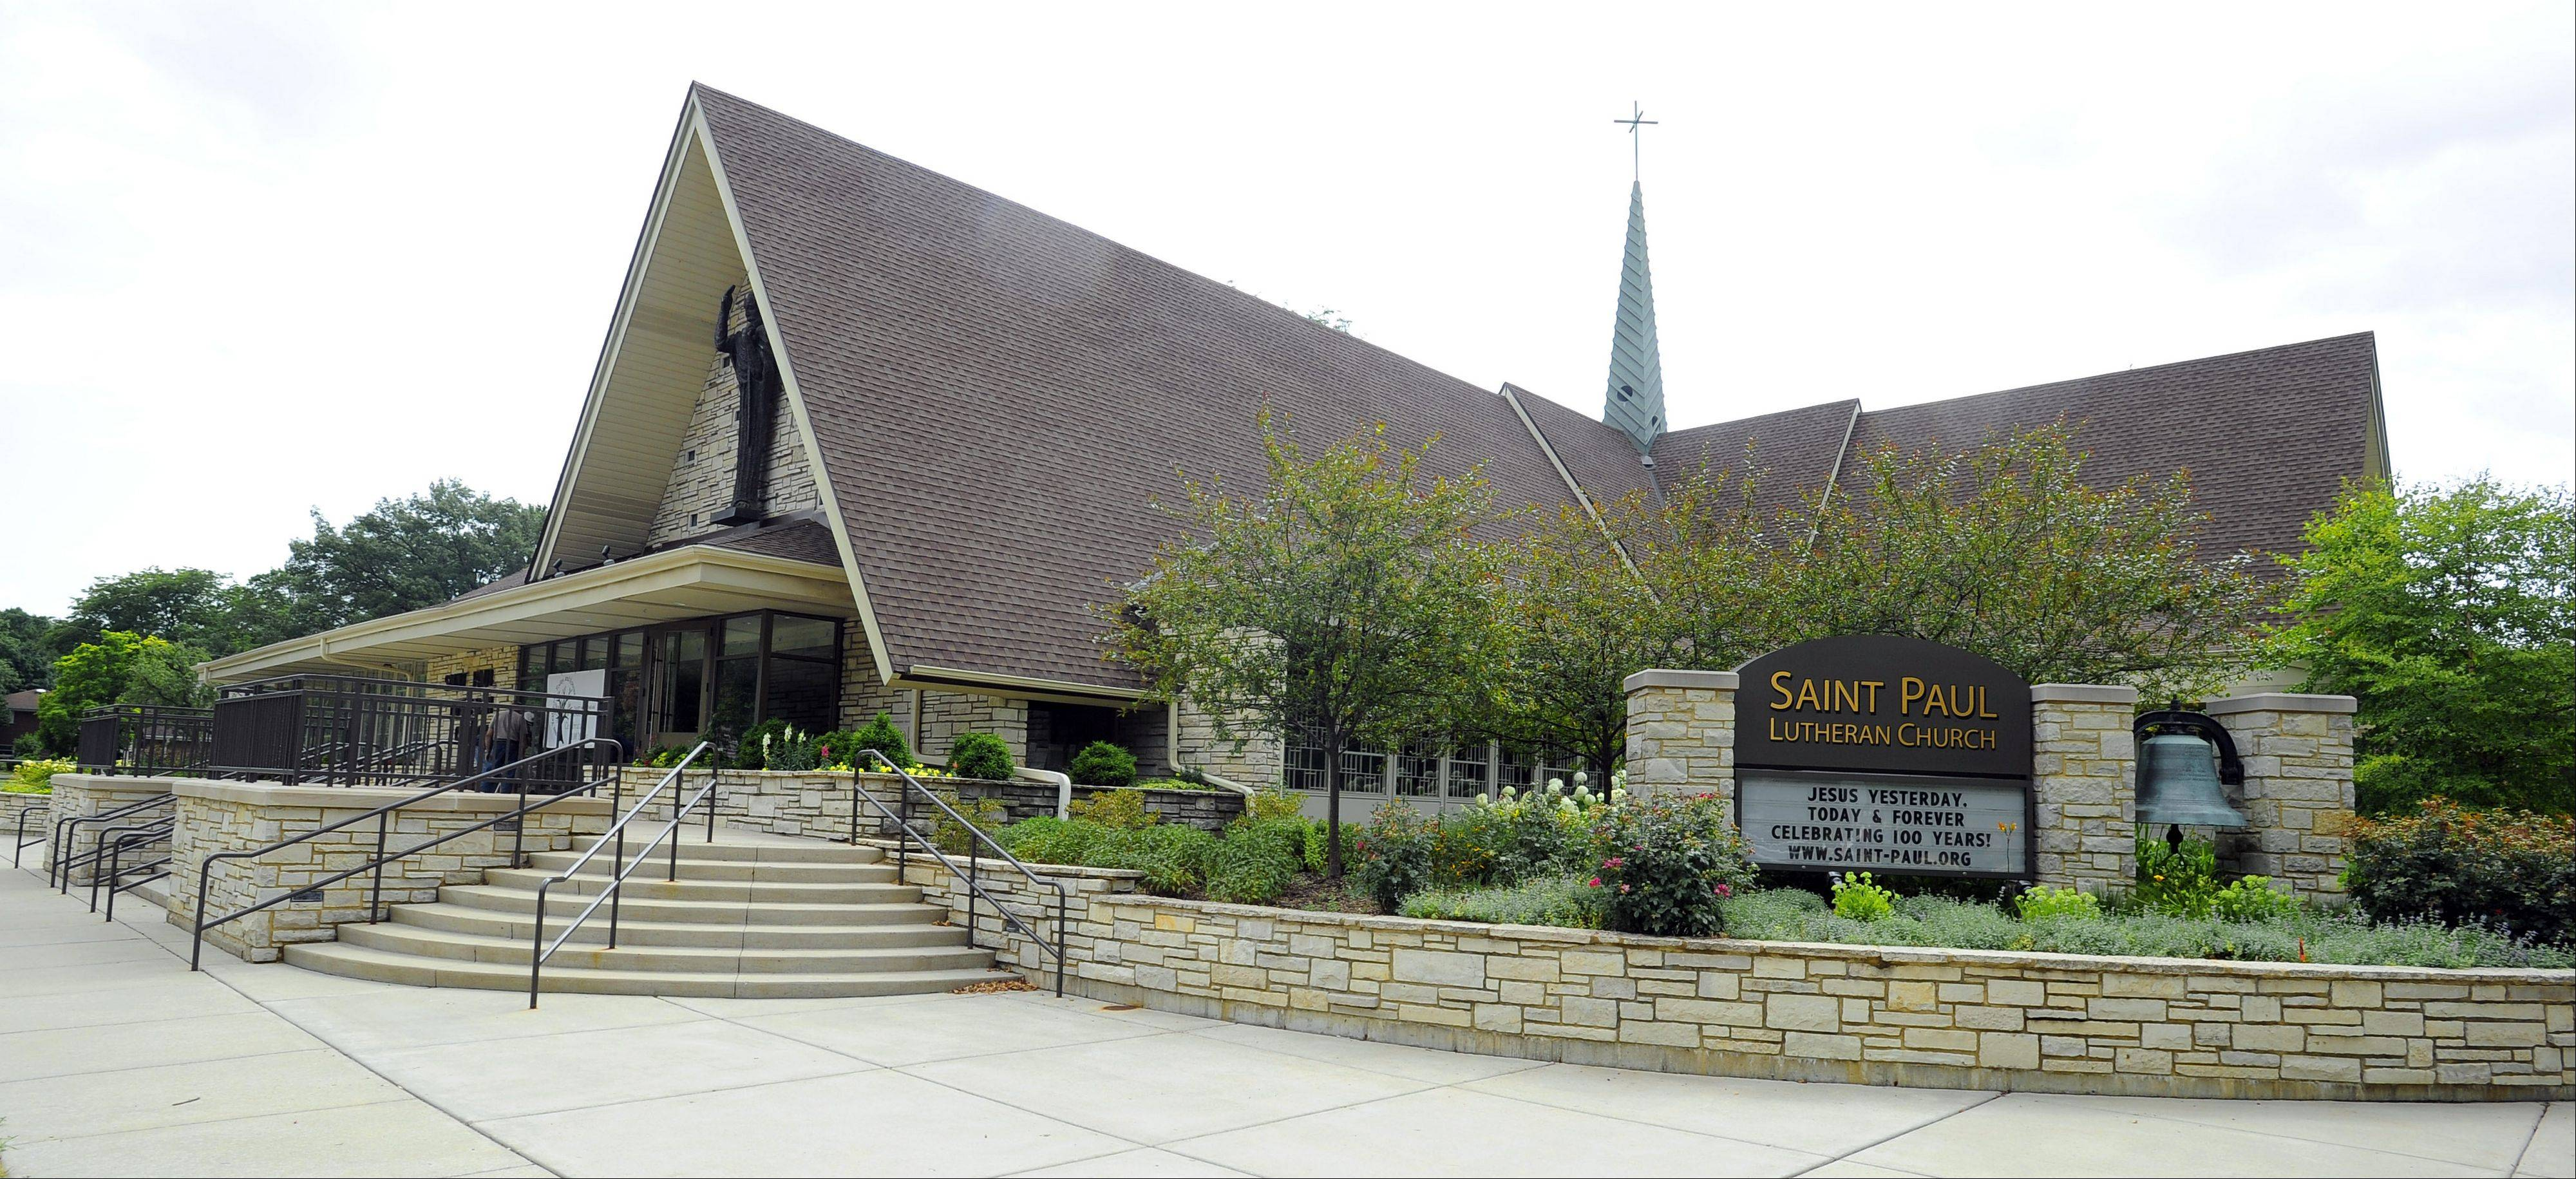 St. Paul Lutheran Church in Mount Prospect celebrates its 100th anniversary this weekend.